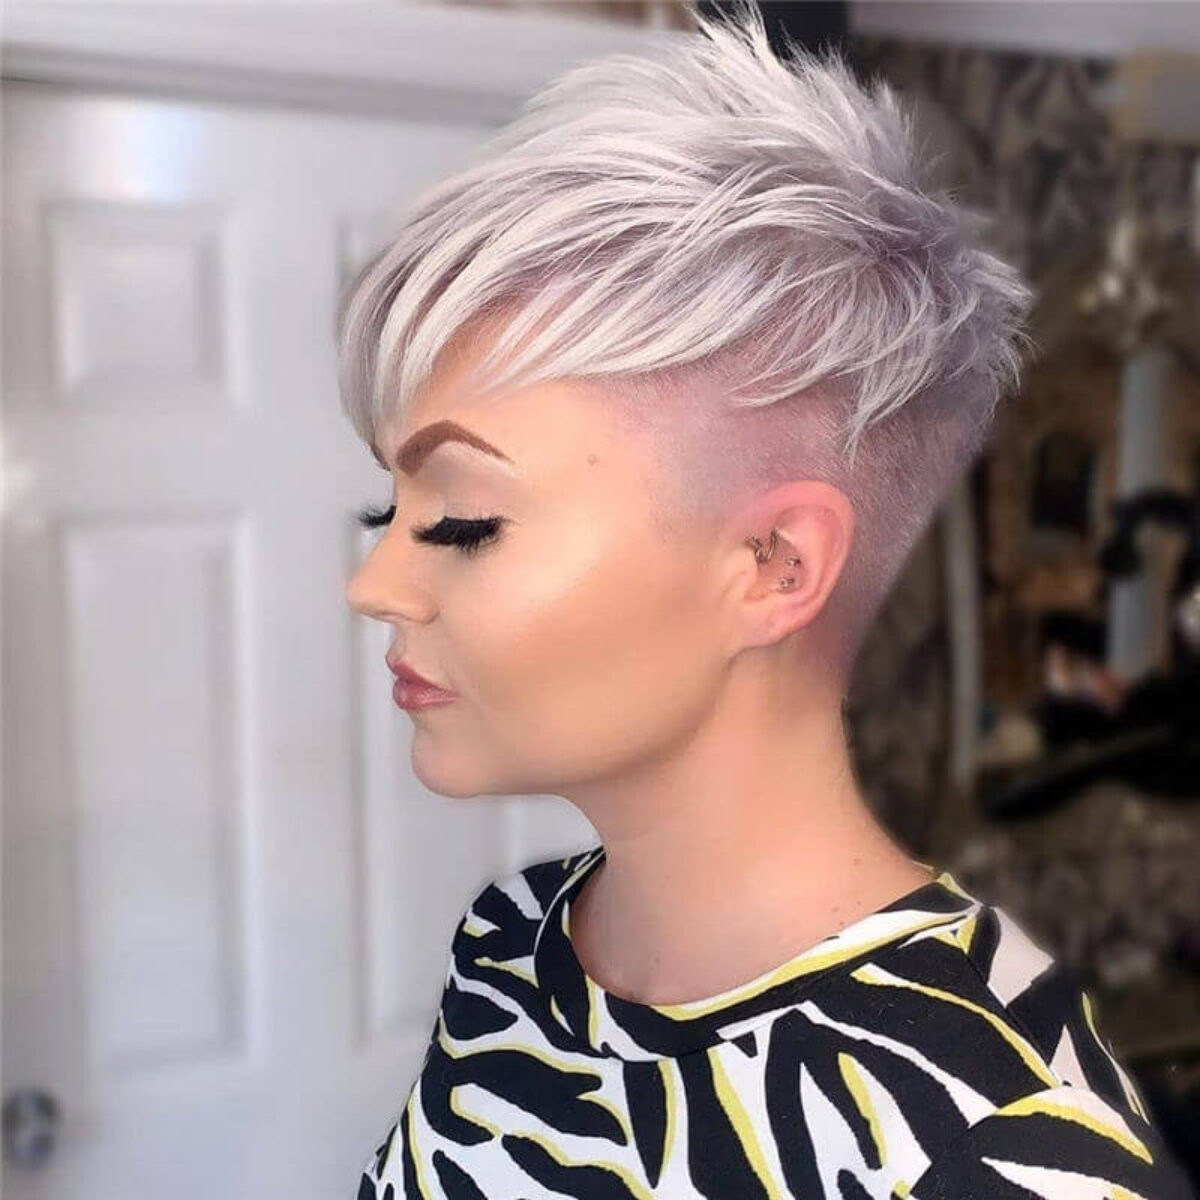 Women's health may earn commission from the links on this page, but we only feature products we believe in. Short Pixie Haircuts For Fine Hair 25